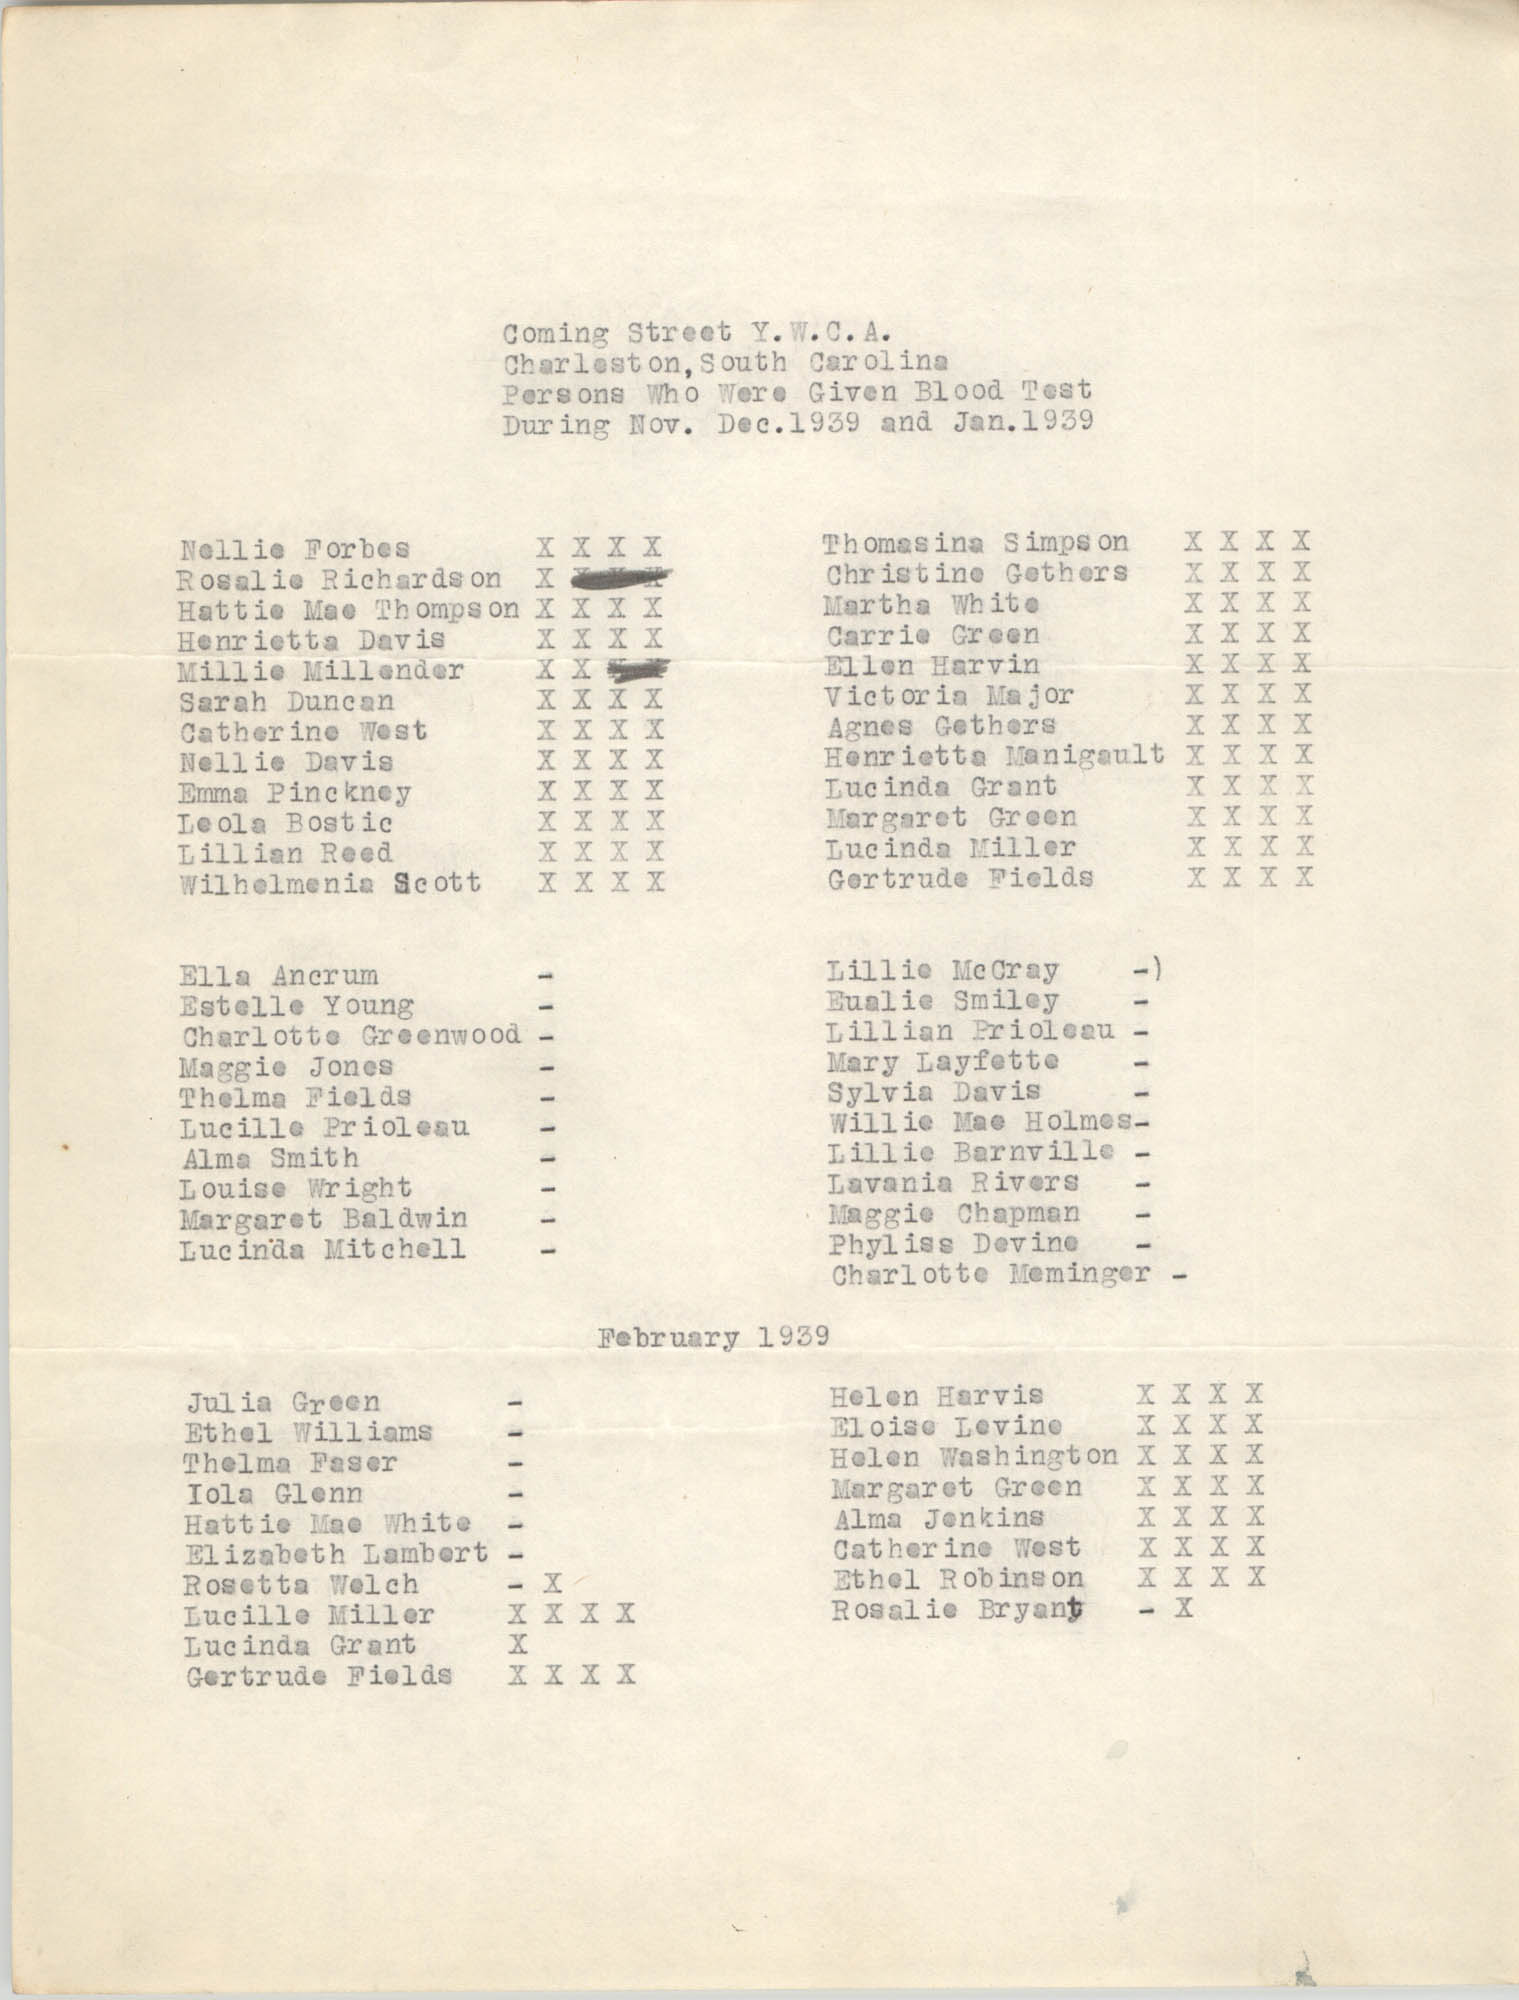 Monthly Report for the Coming Street Y.W.C.A., Blood Tests, November through January , 1939